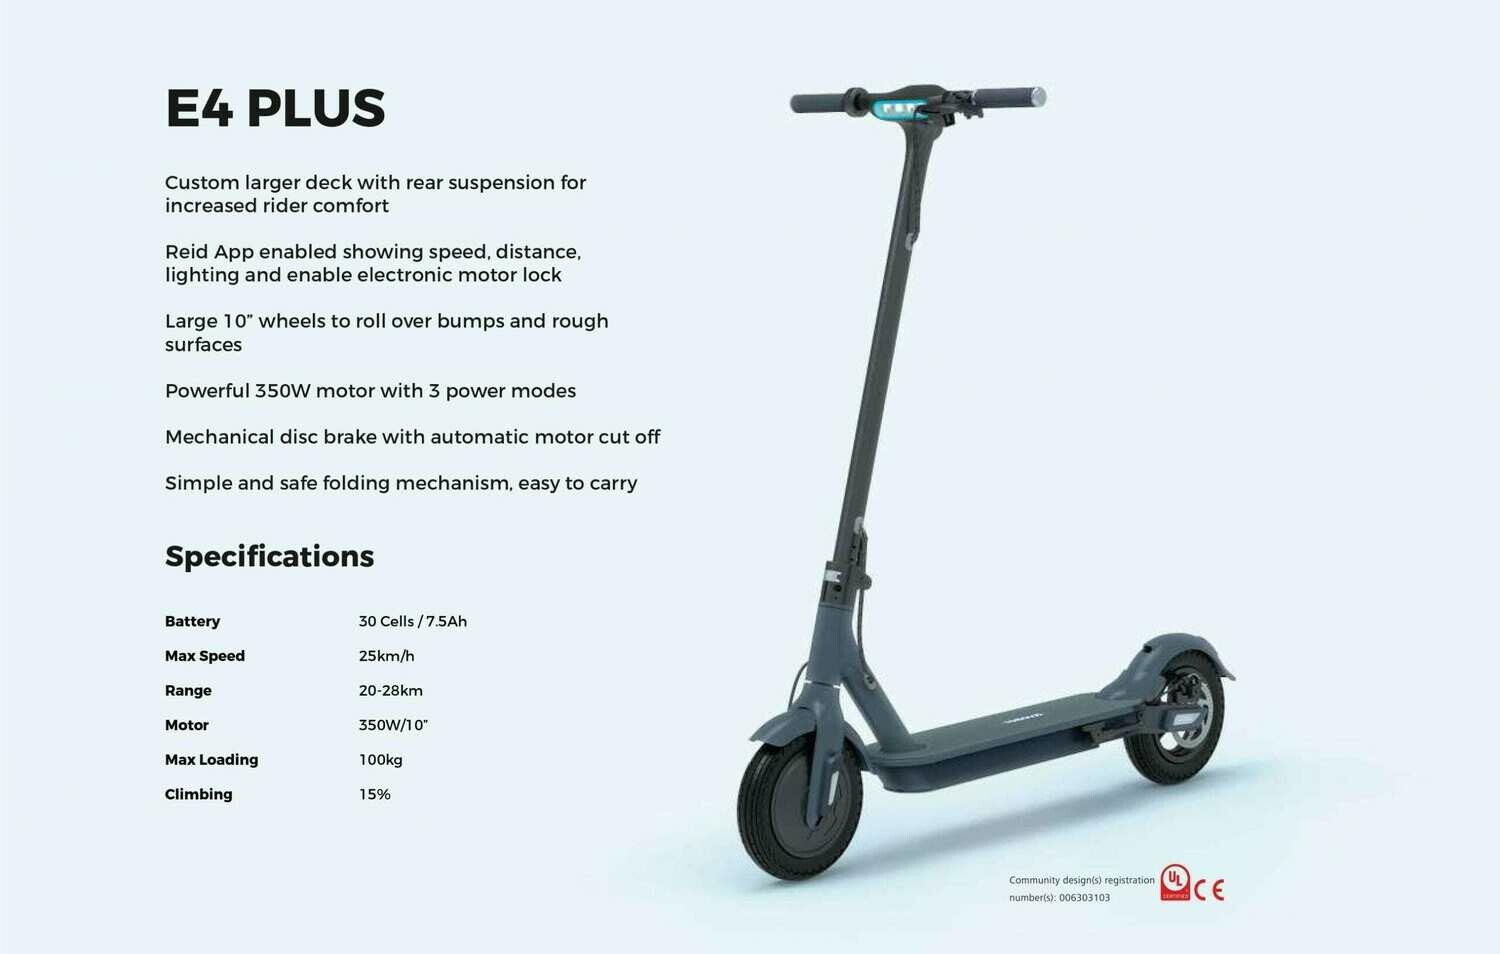 Dorwizz Electric Scooter Mk2 - The Reid